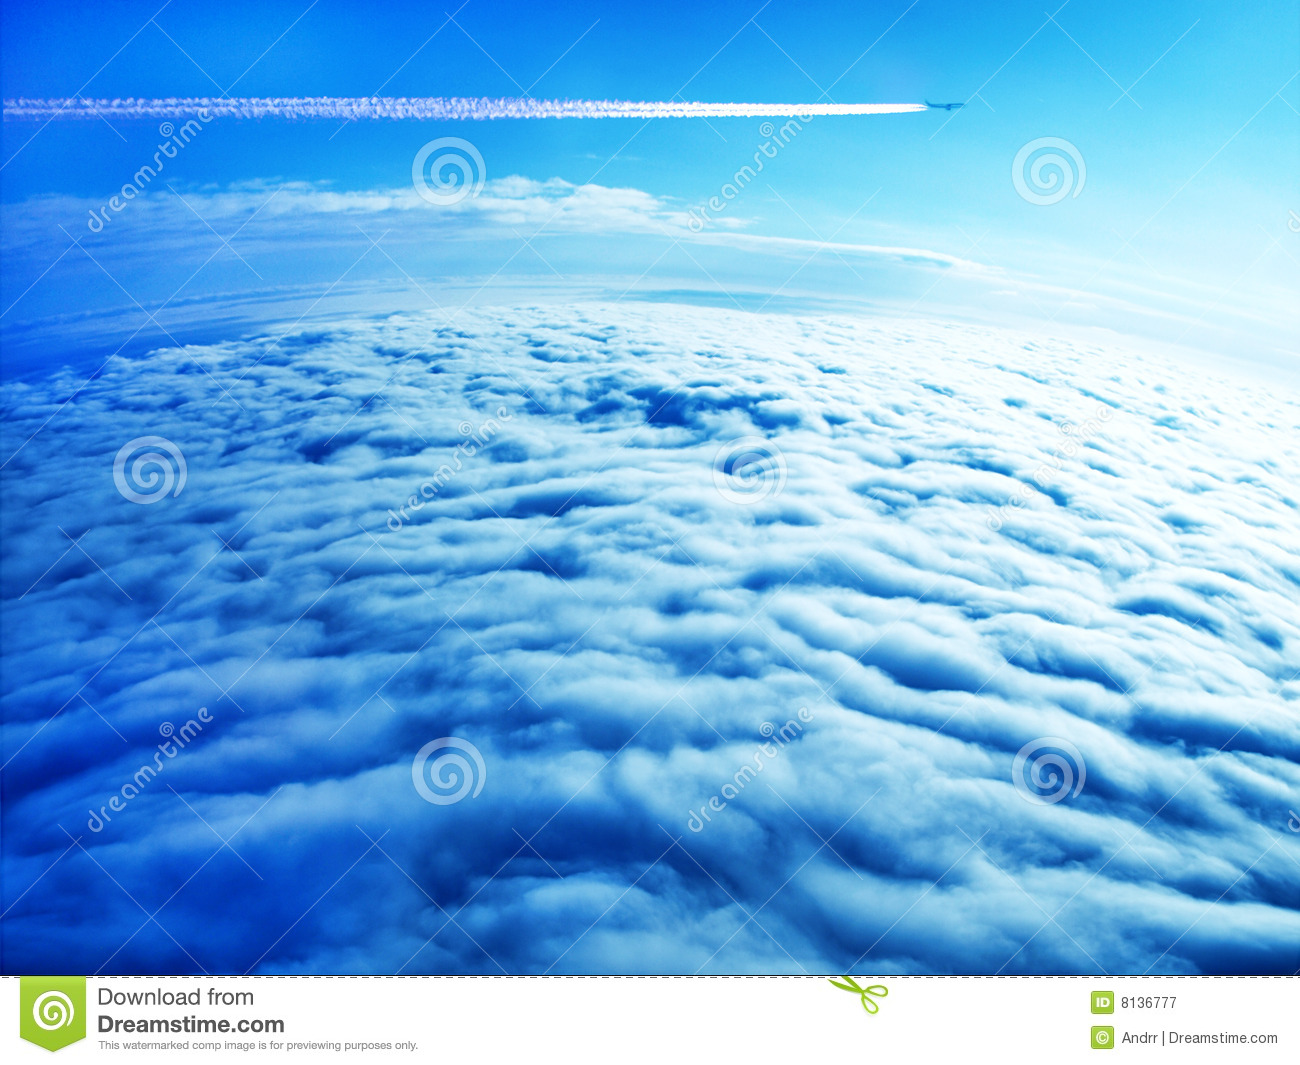 Jet plane contrail in blue sky above the clouds